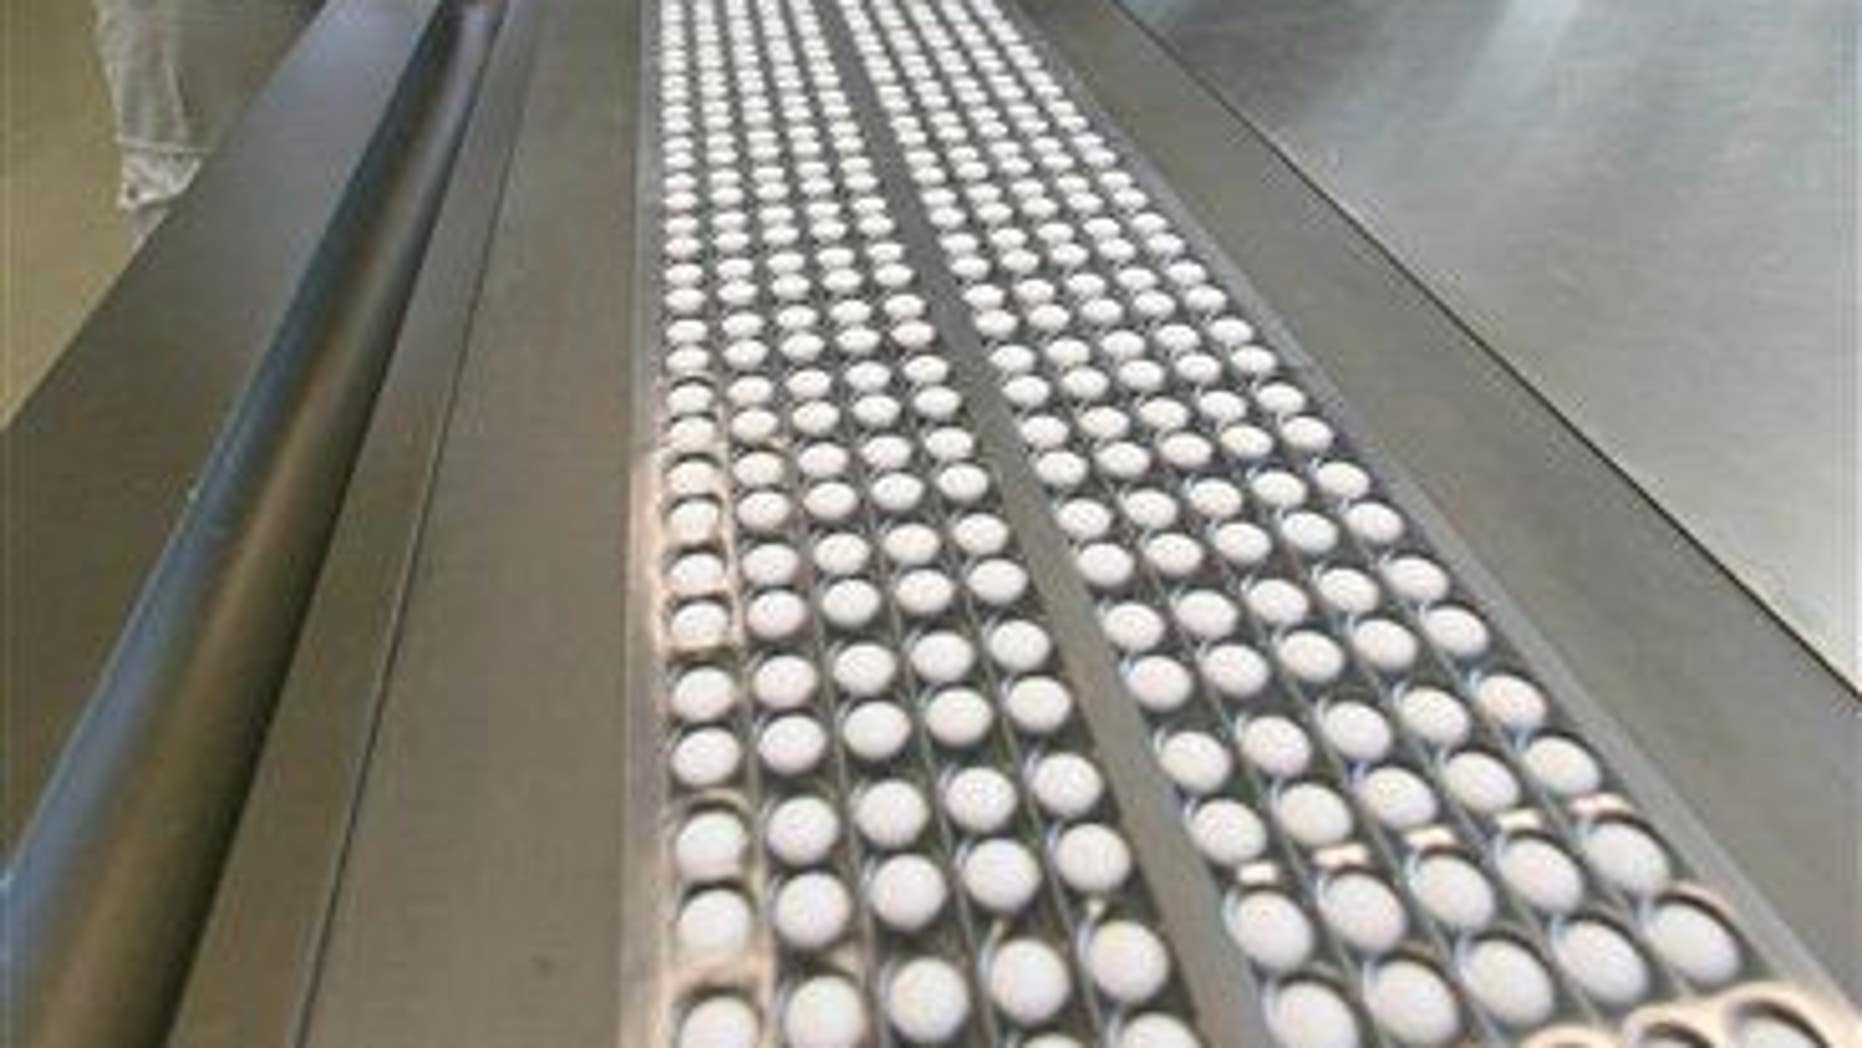 A pill press in a pharmaceutical plant.